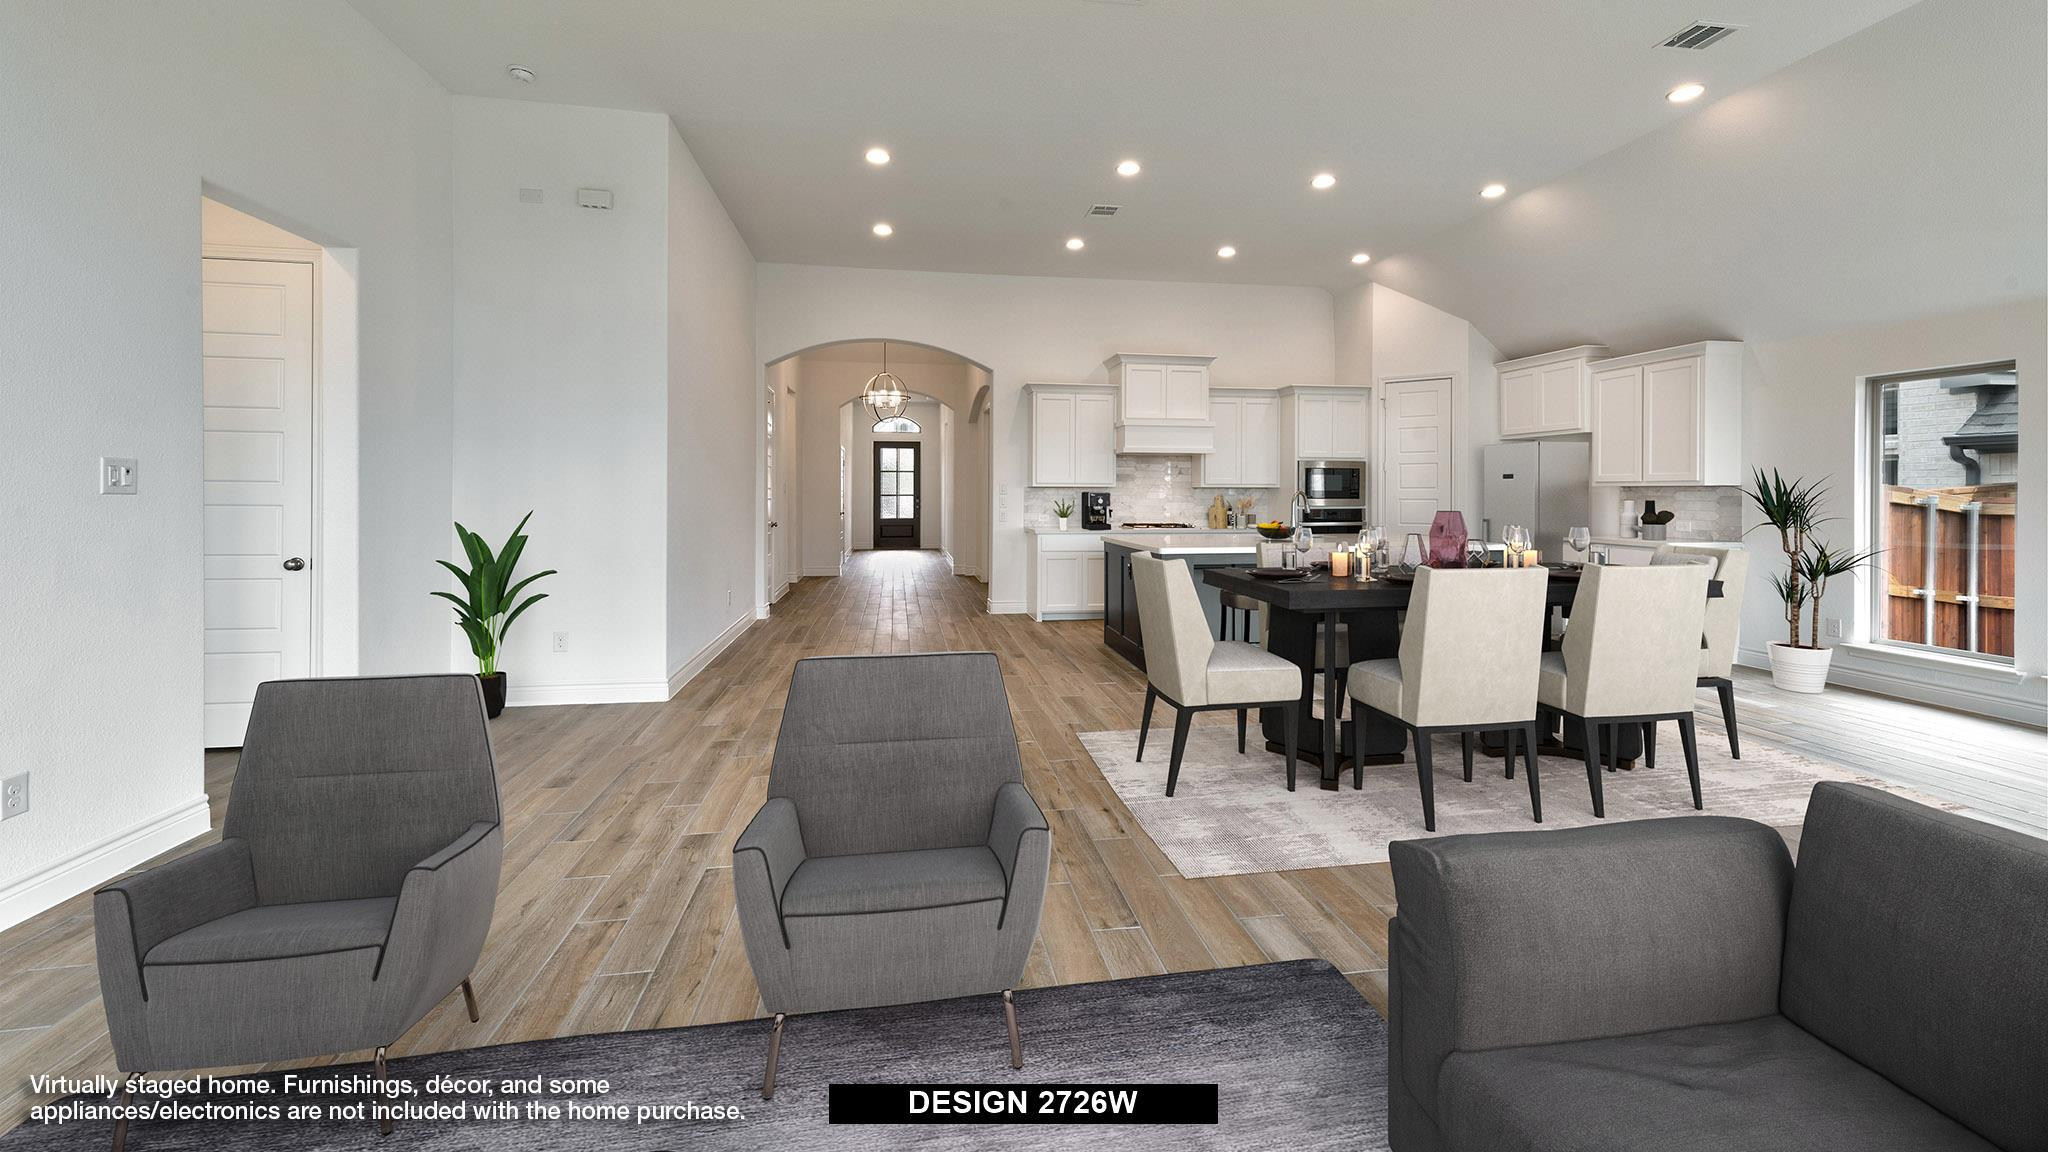 Living Area featured in the 2726W By Perry Homes in Dallas, TX